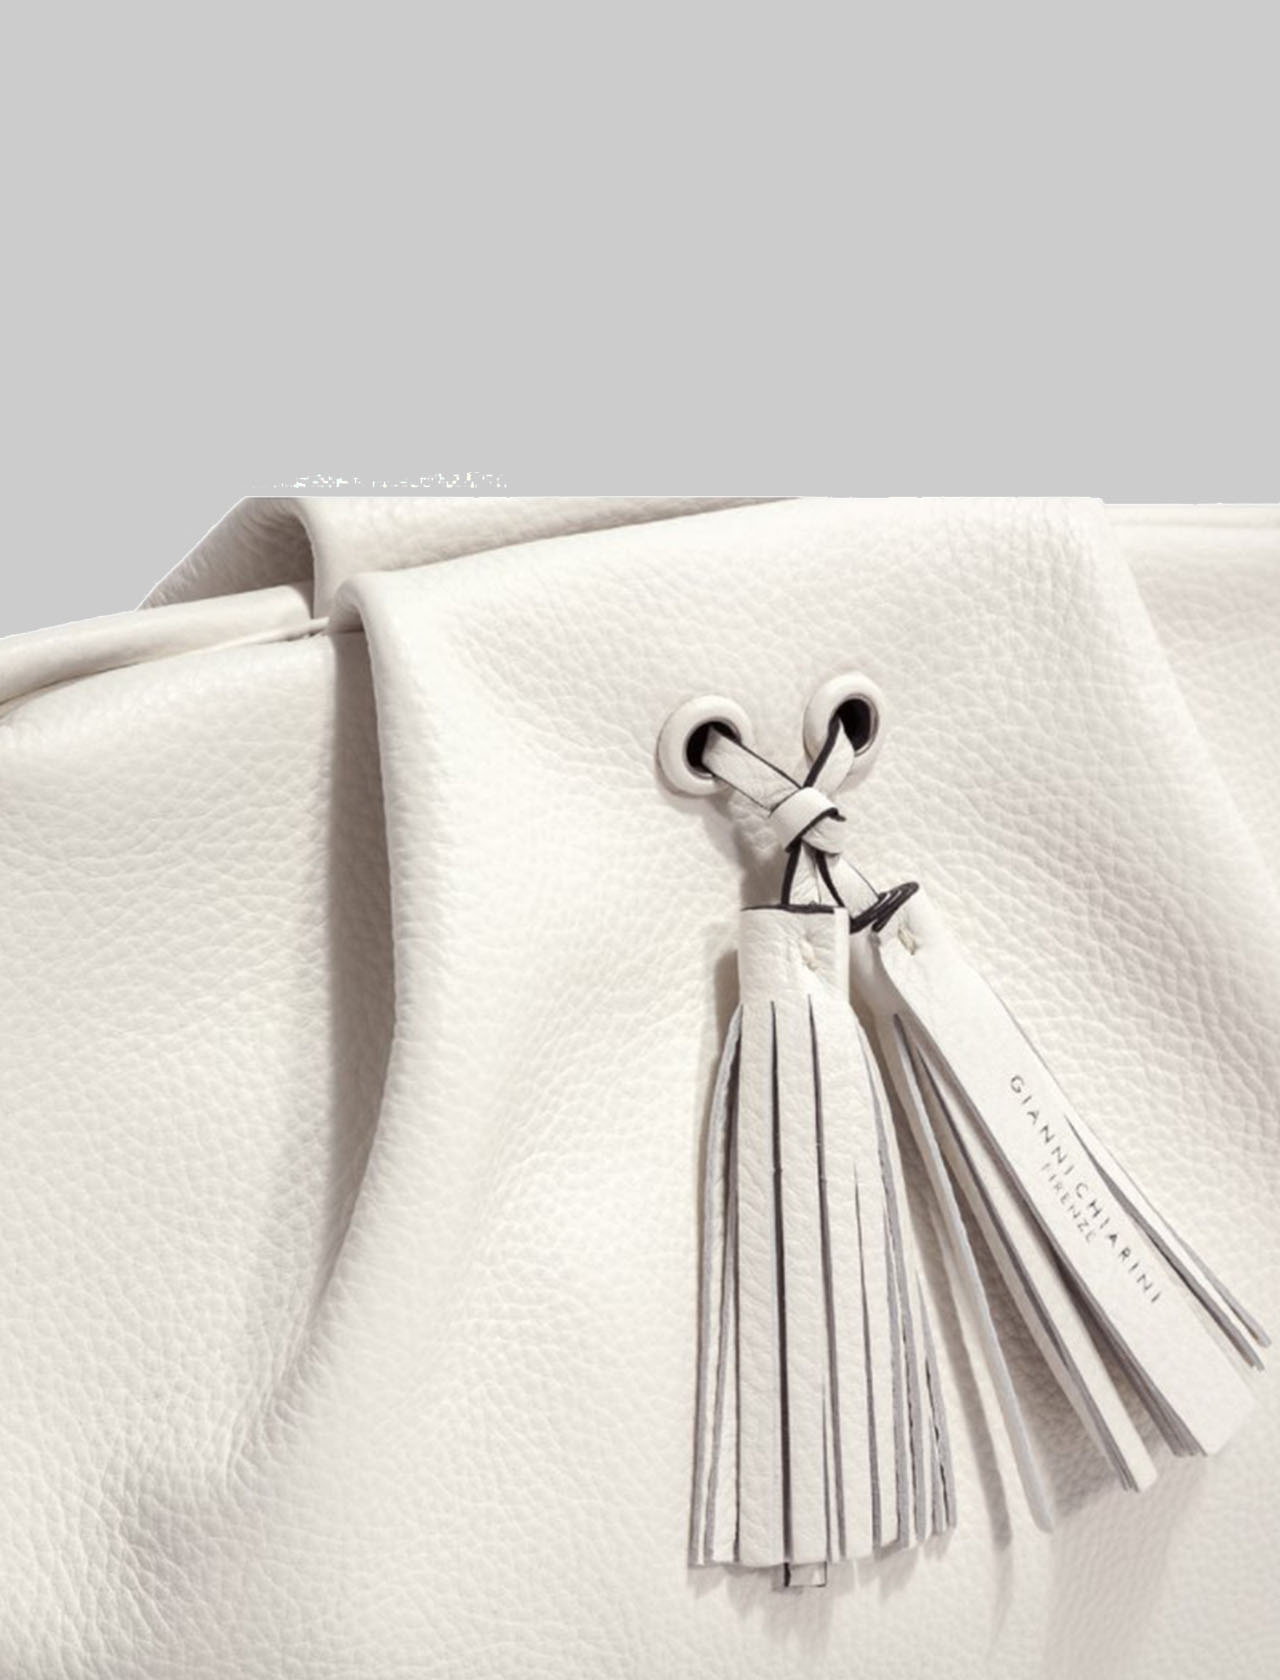 Small Flora Shoulder Bag In Soft Cream Leather With Shoulder Strap Gianni Chiarini | Bags and backpacks | BS84753890